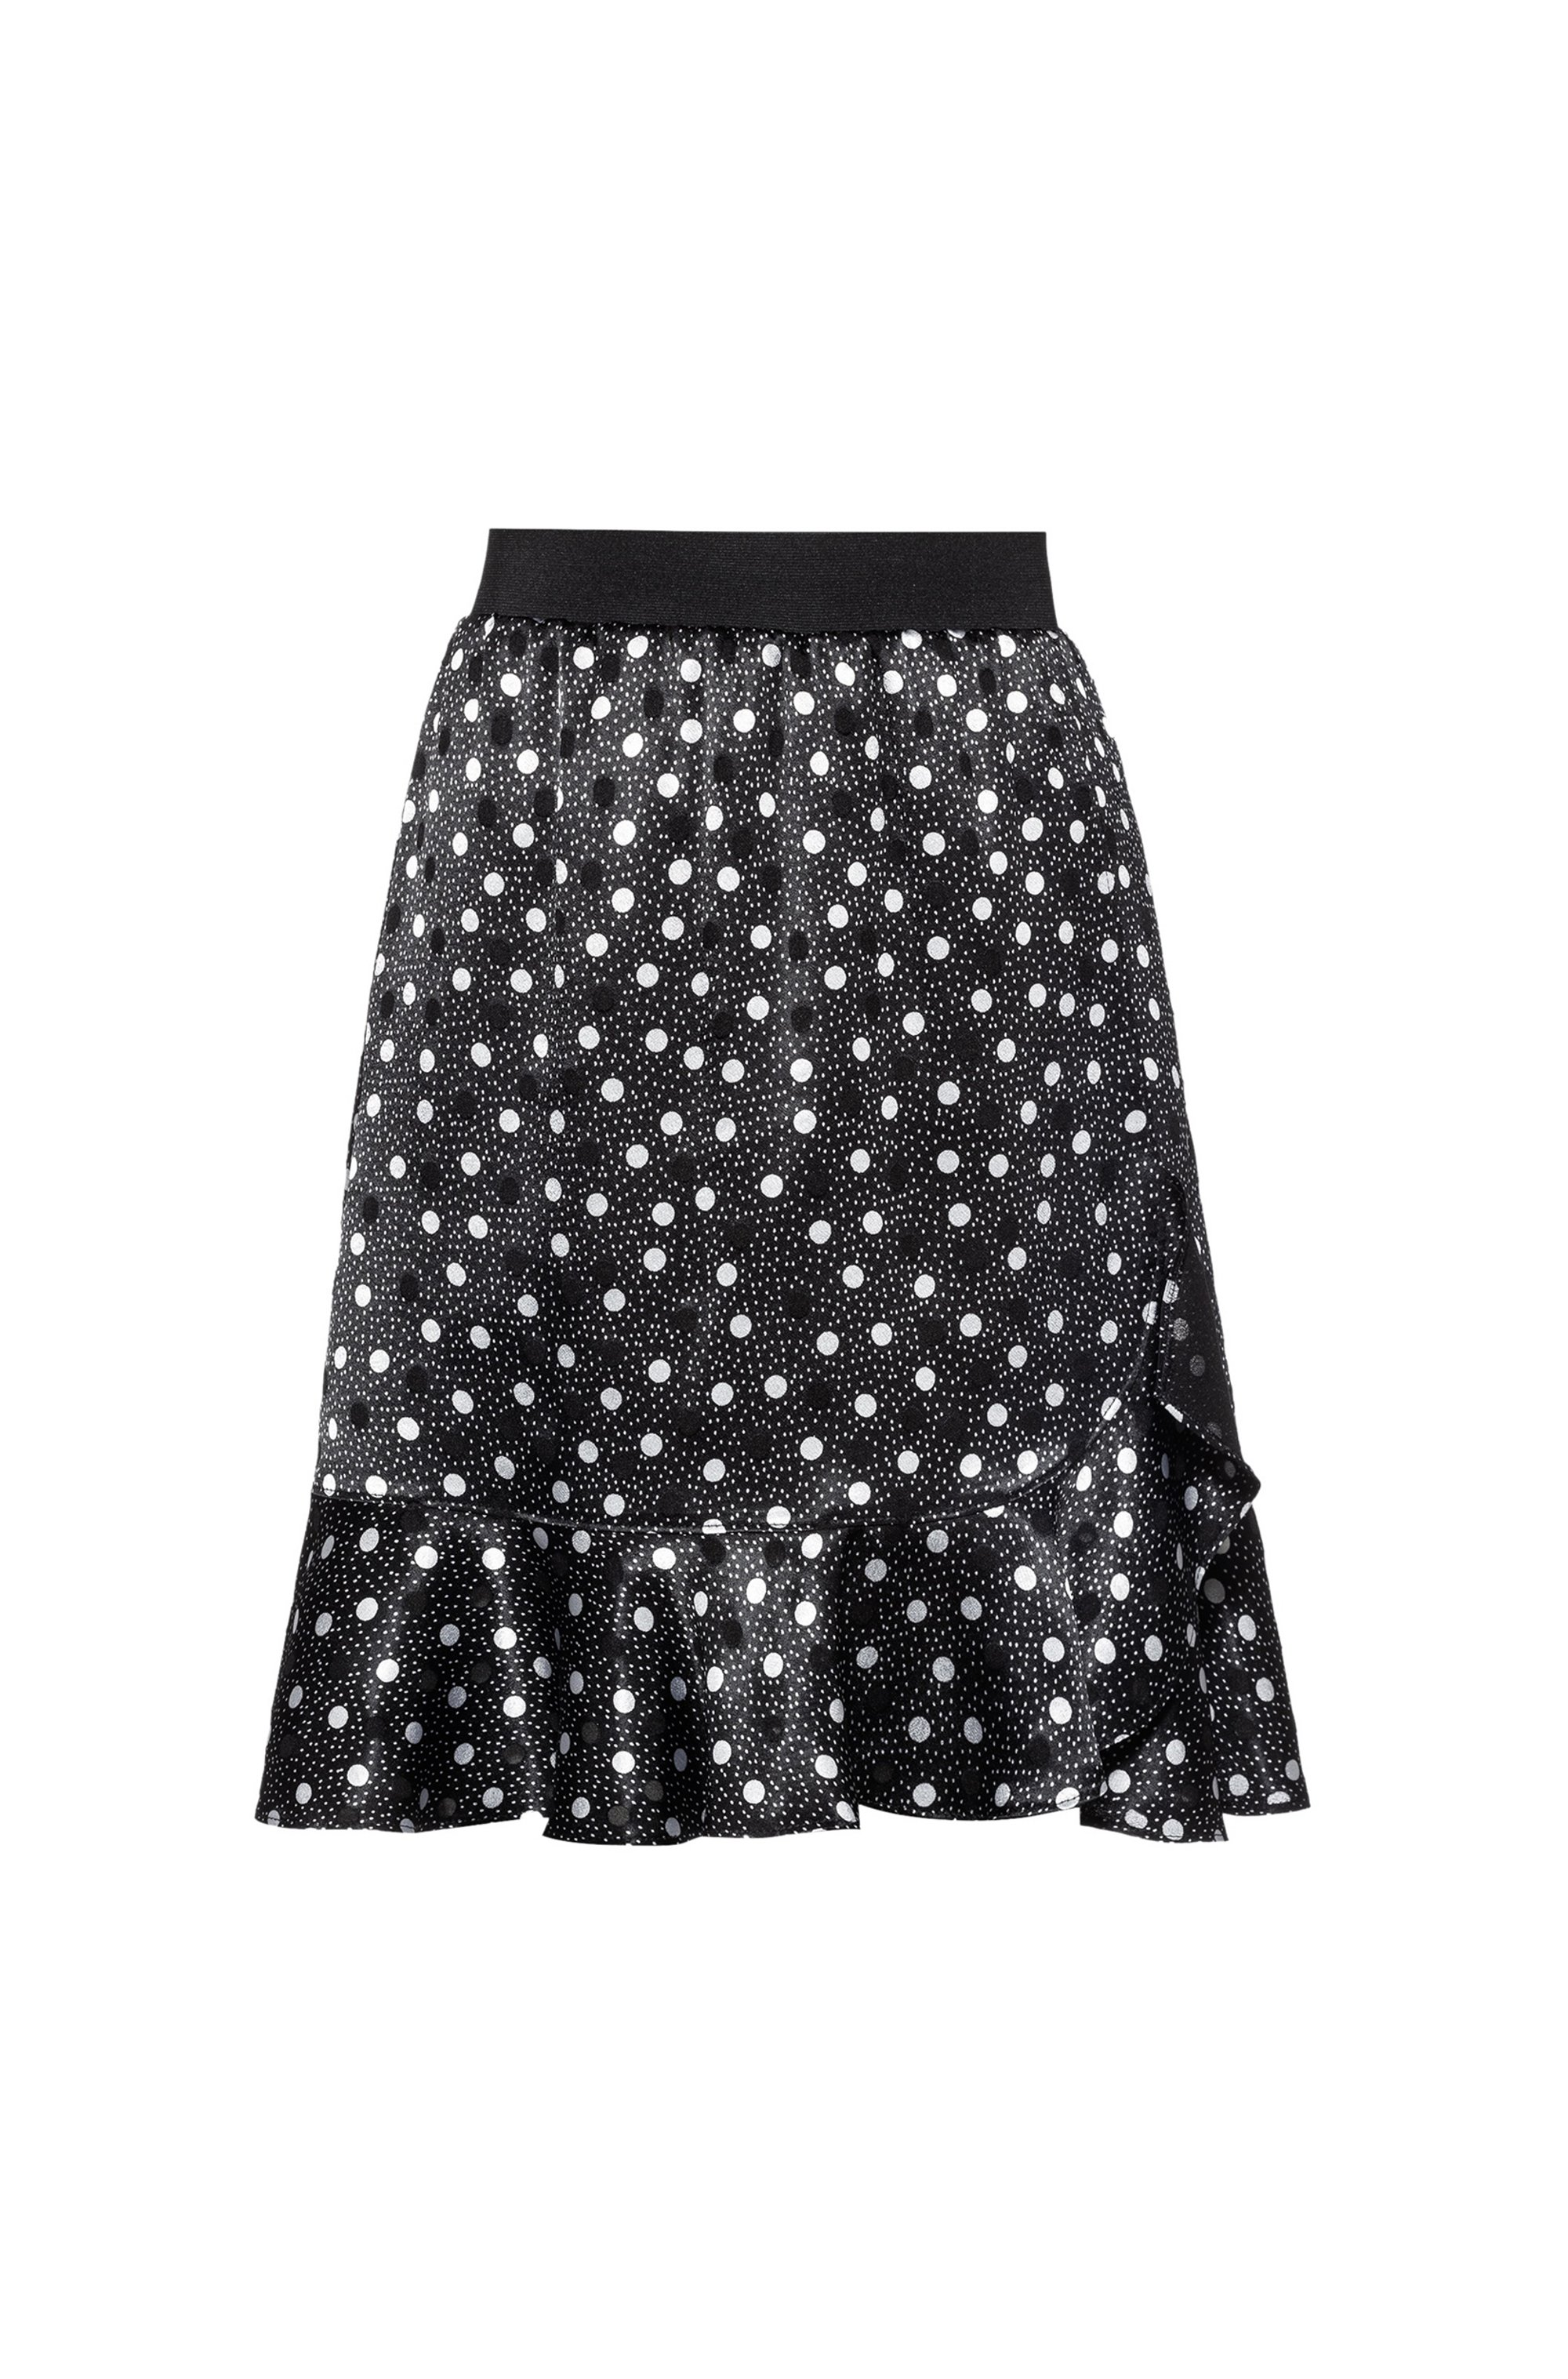 Mini skirt with polka-dot print and ruffle detail, Patterned